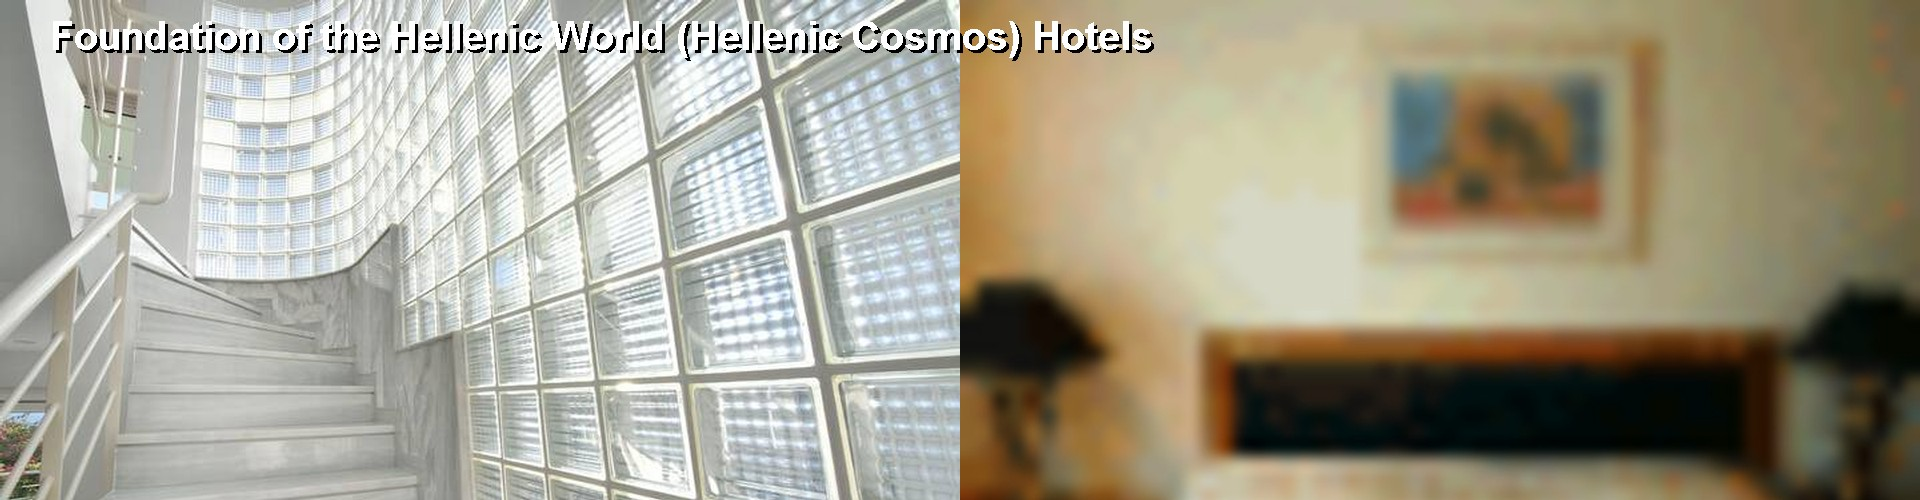 5 Best Hotels near Foundation of the Hellenic World (Hellenic Cosmos)